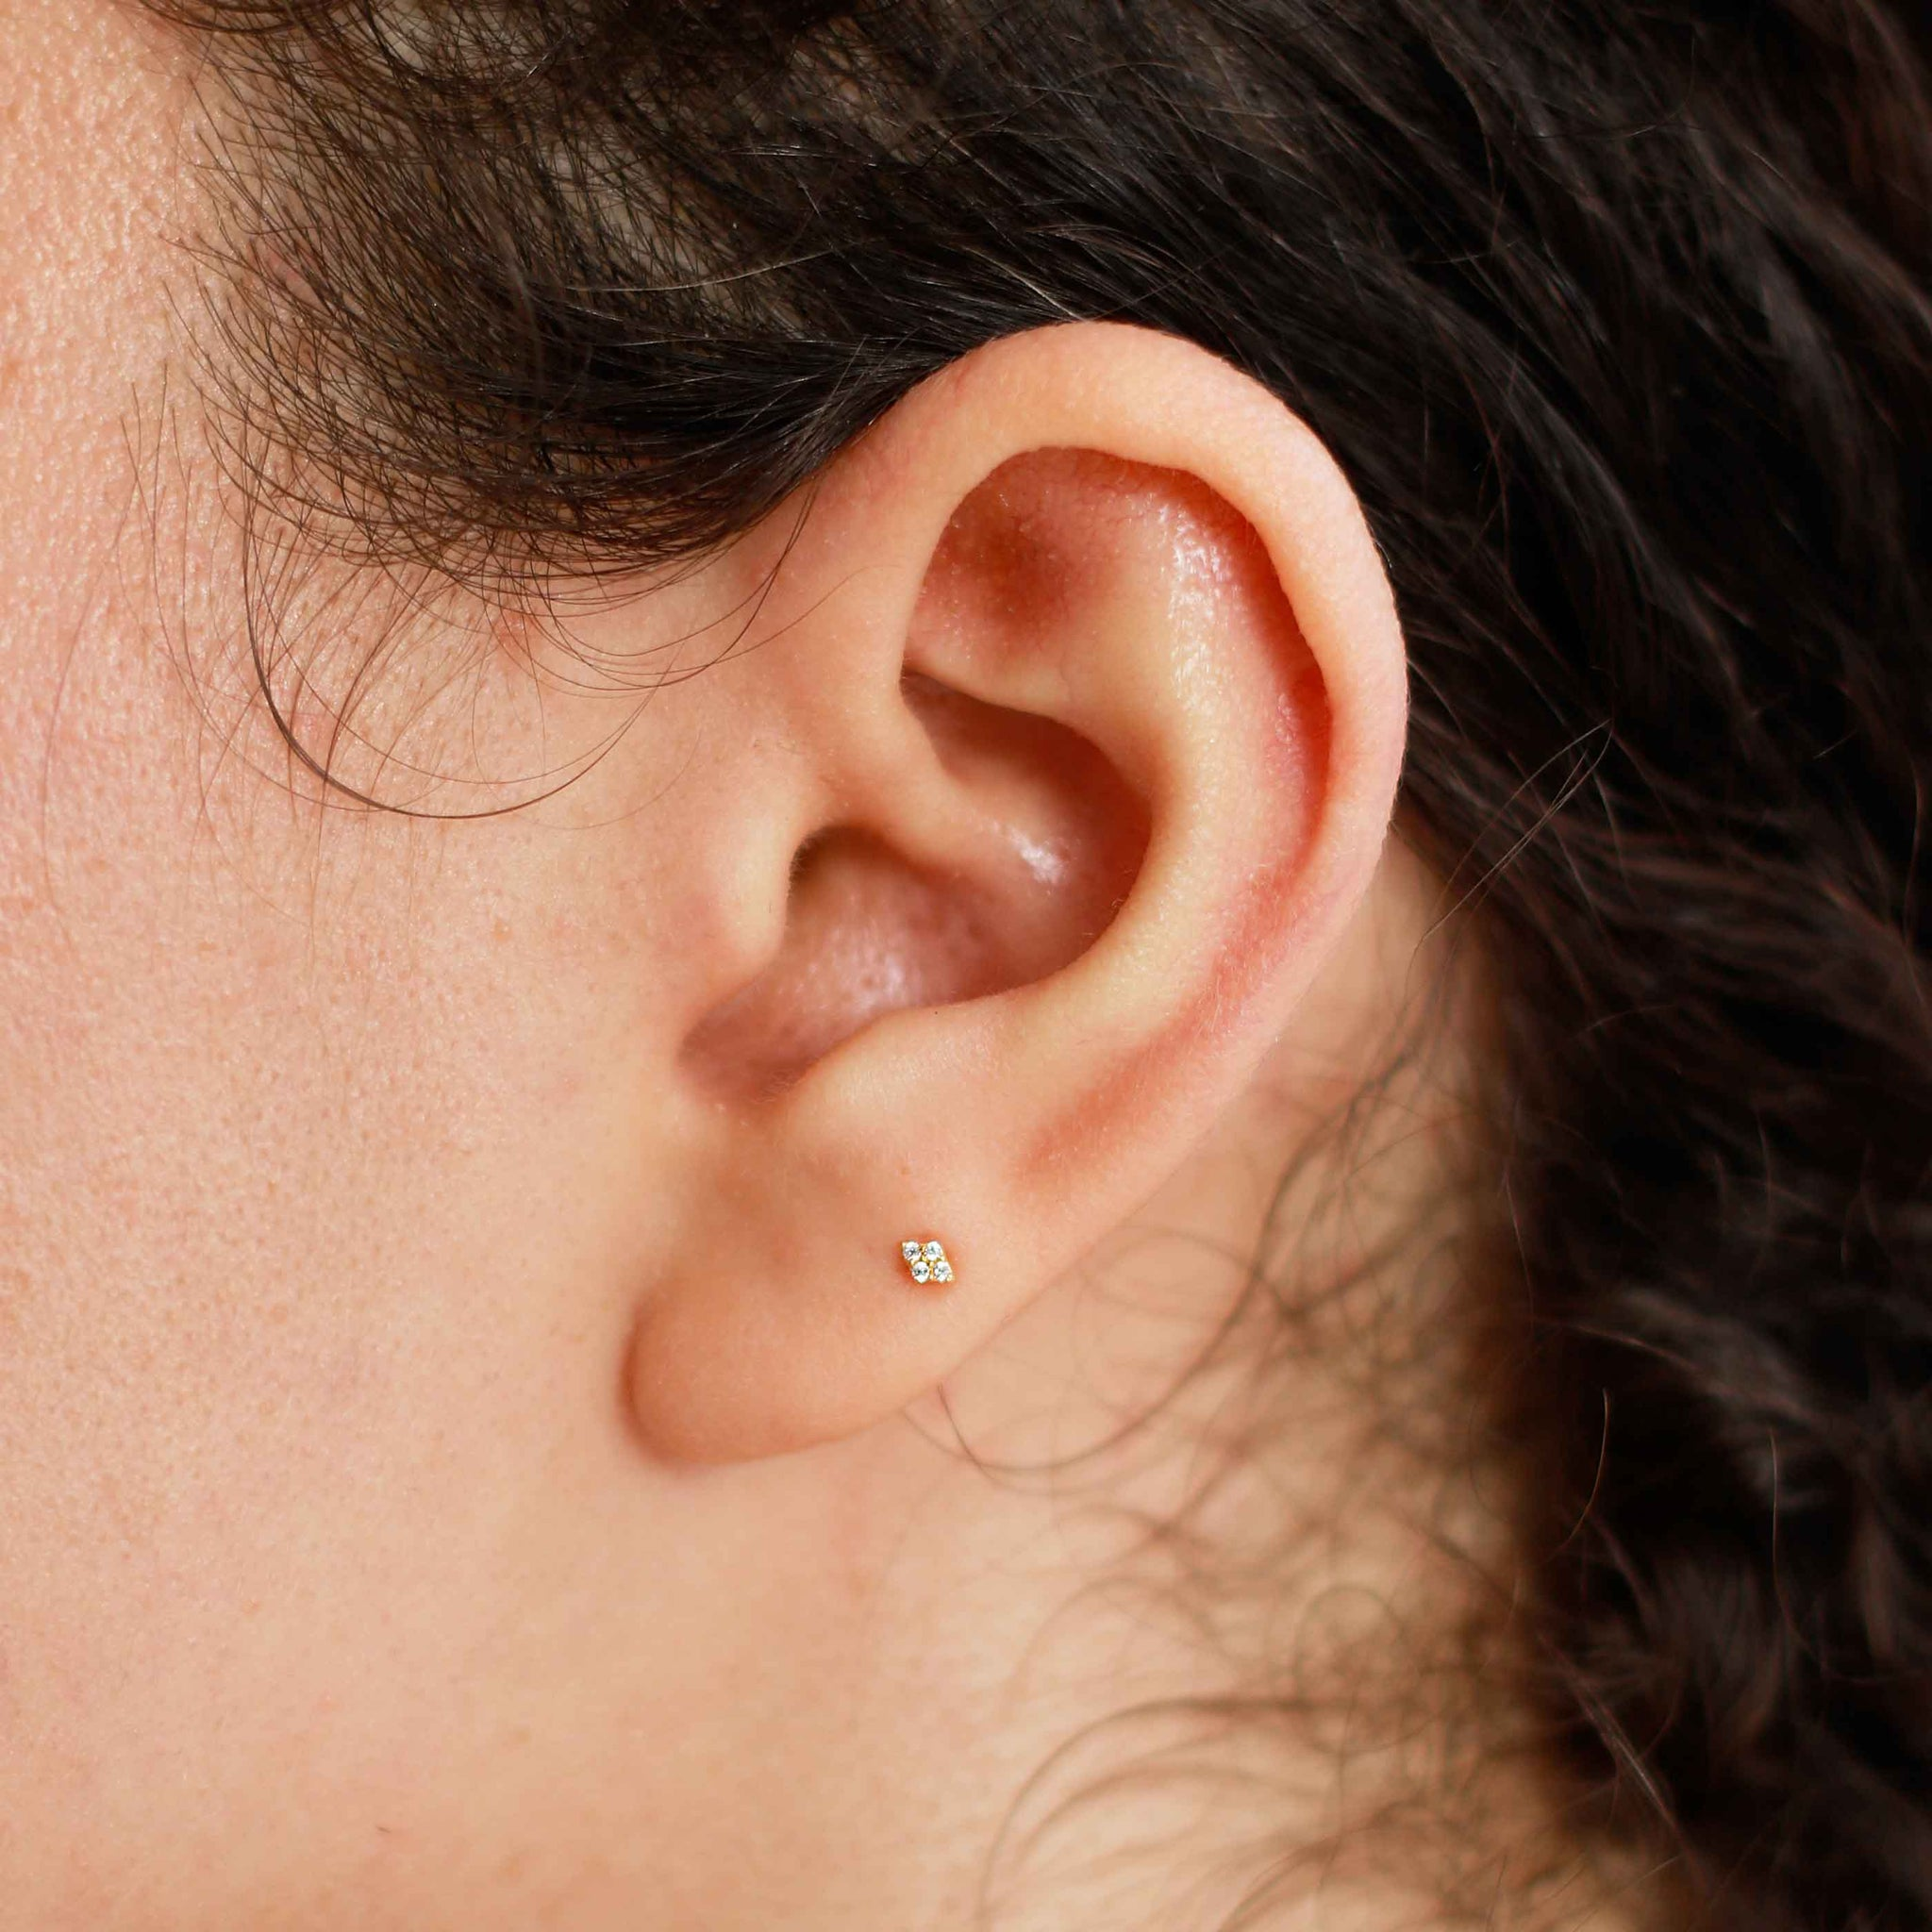 Gem Quartet Barbell in Gold on Ear